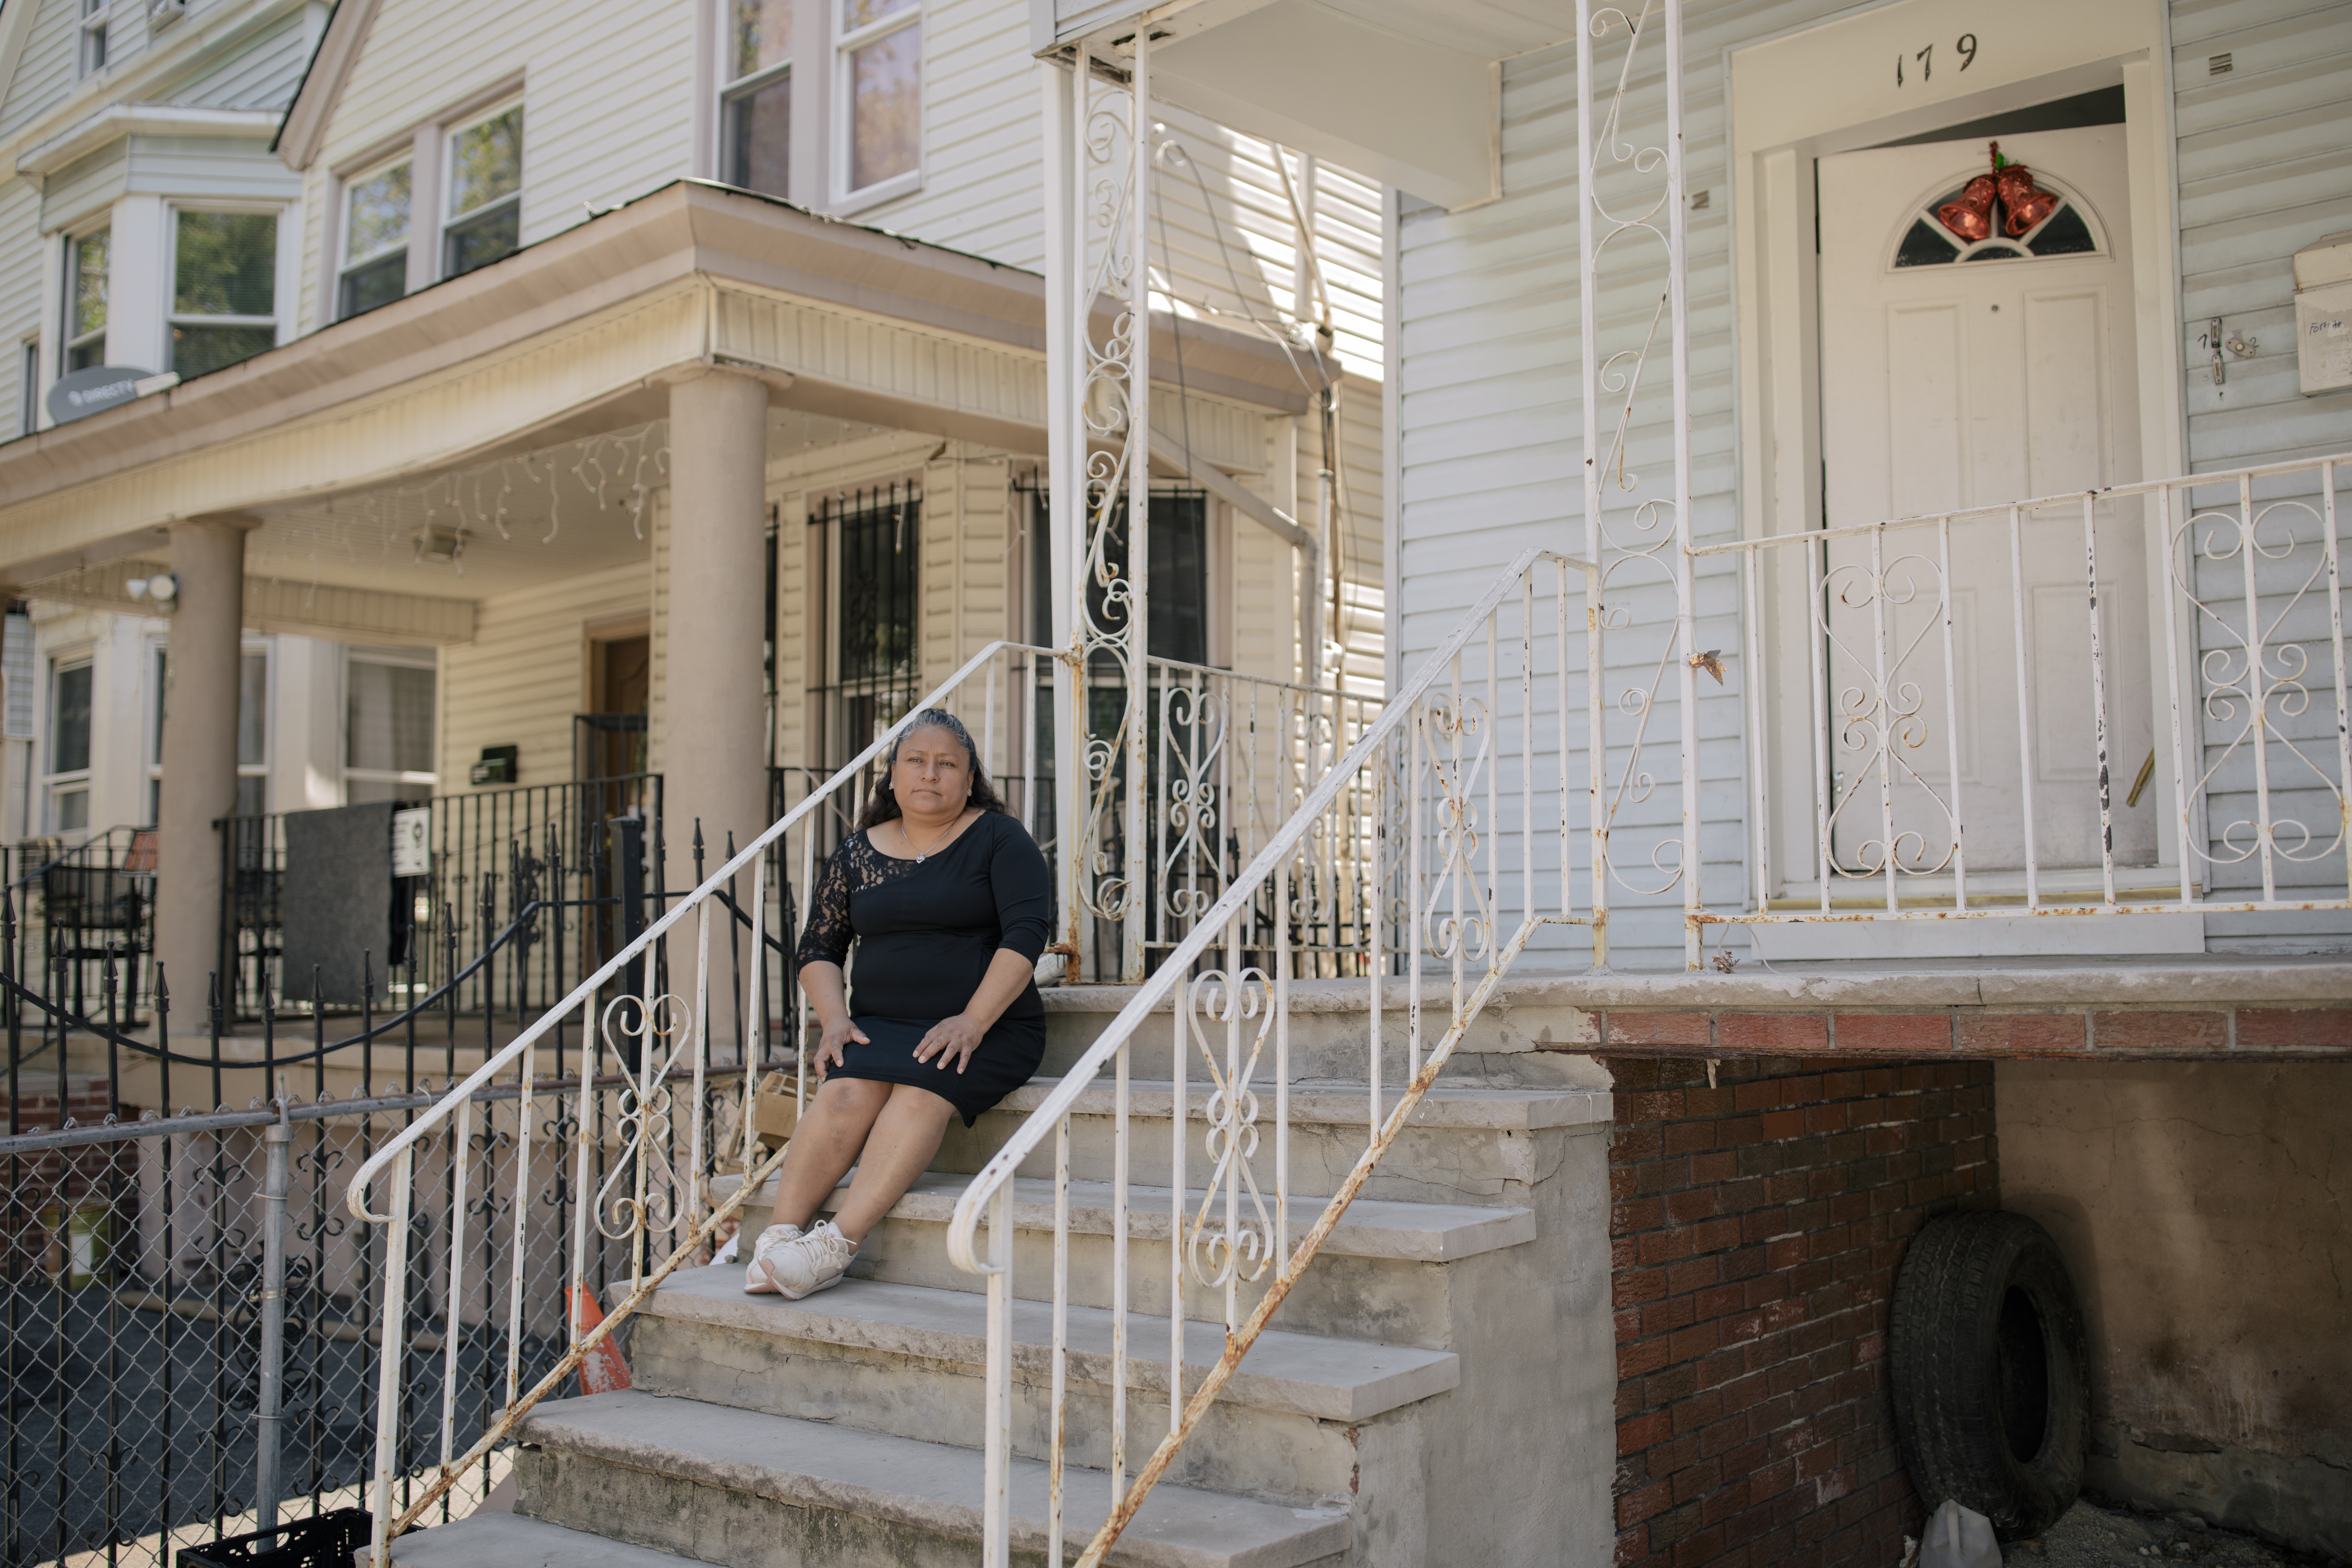 Patricia Coyotecatl, wearing a black dress and white sneakers, sits on the concrete front steps of her home in Newark, which is framed by a white metal fence on either side.